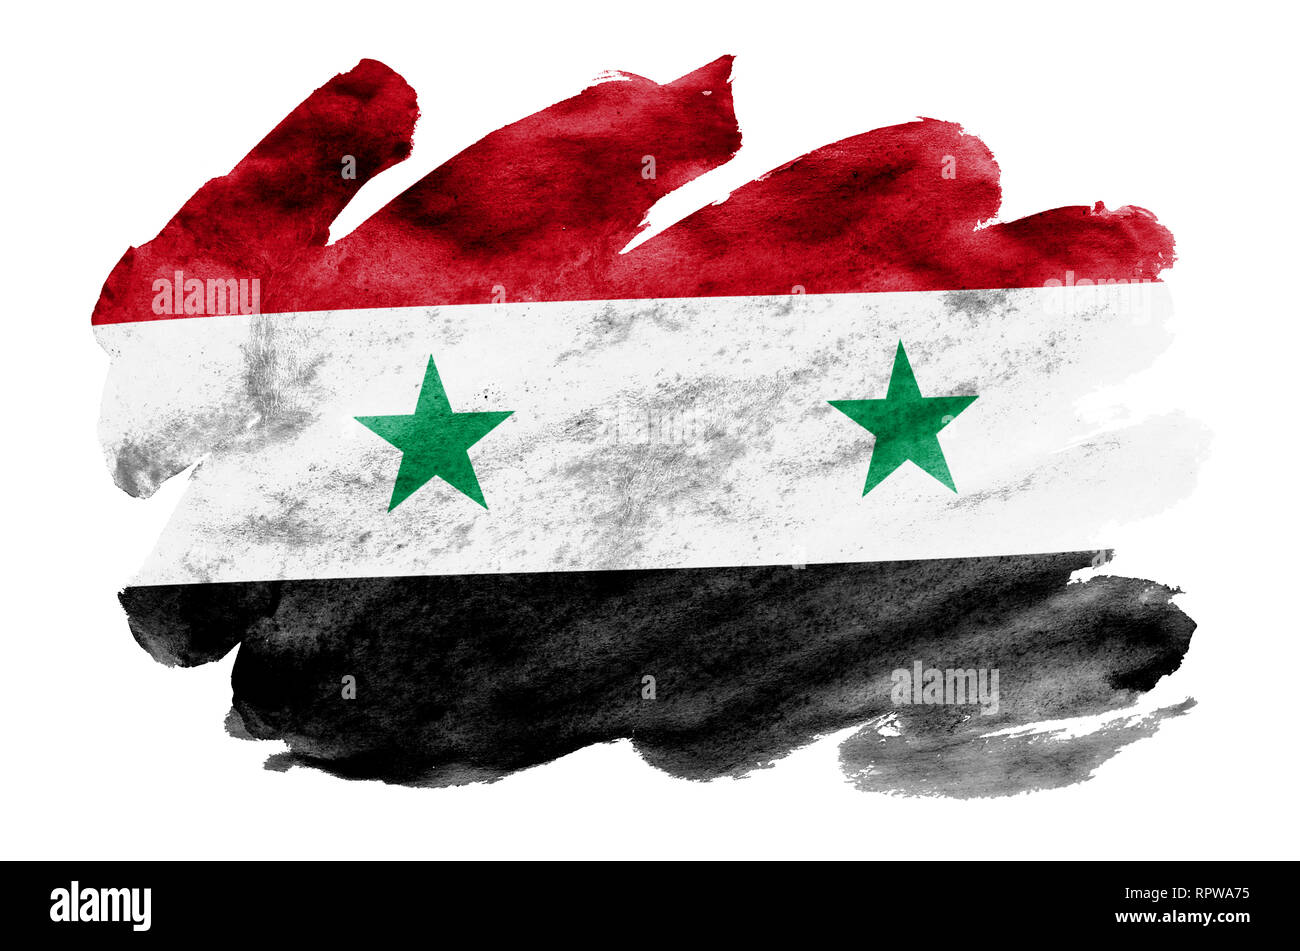 Syria flag  is depicted in liquid watercolor style isolated on white background. Careless paint shading with image of national flag. Independence Day  - Stock Image